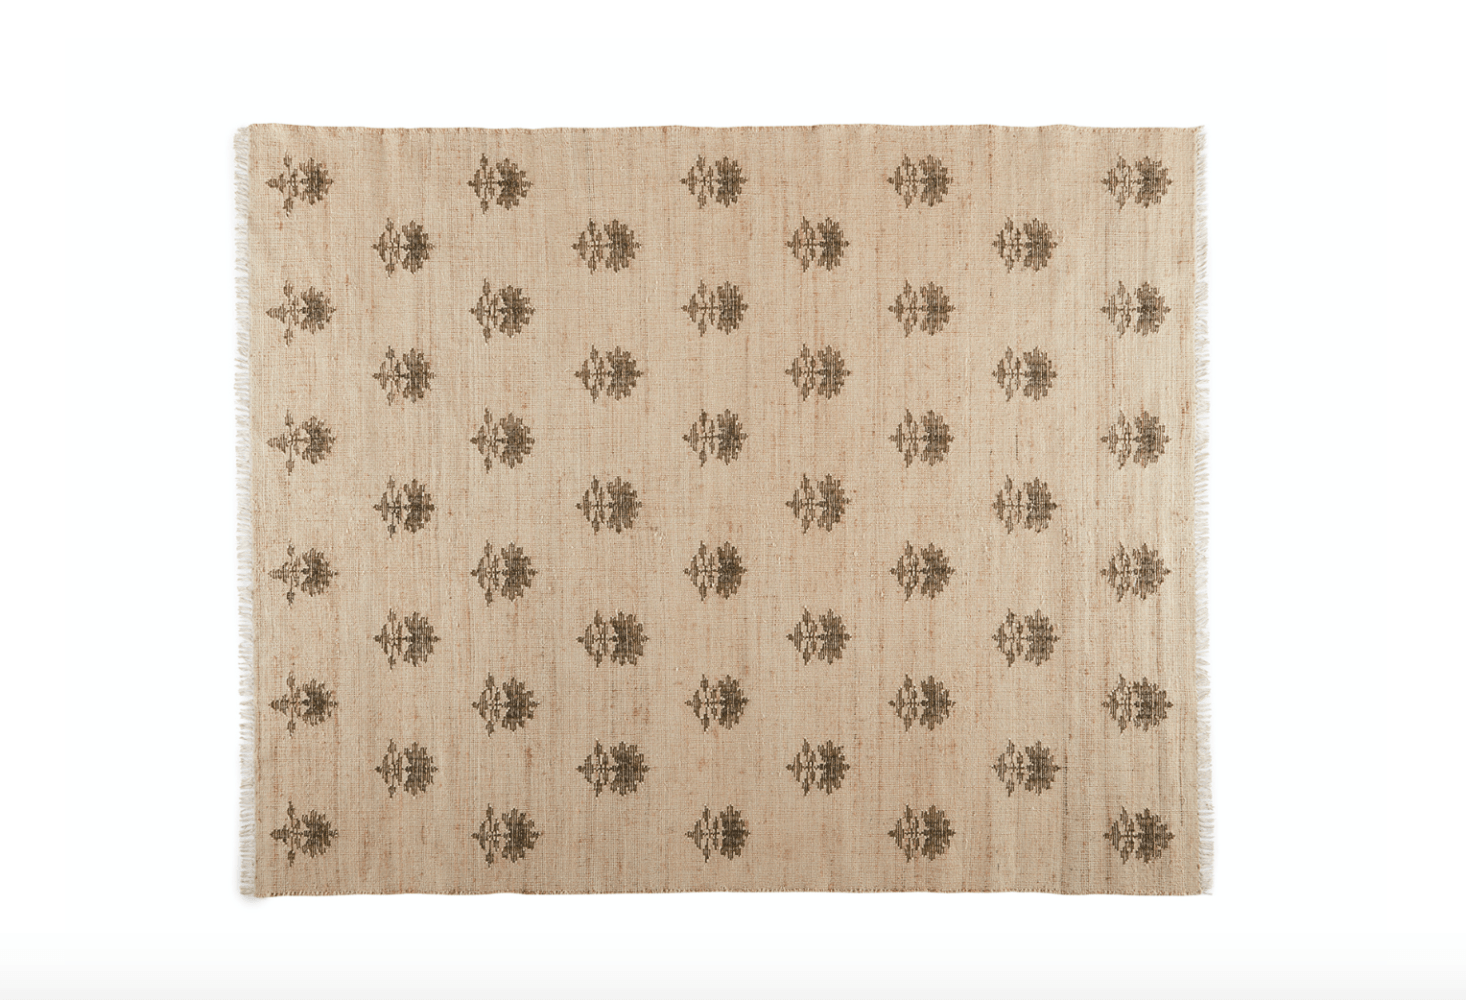 And the hand-knotted Disha Rug is one of four new rugs made in partnership with Obeetee, sustainable rug makers who use vegetable dyes and an energy-efficient water system, advocate for women weavers, and prioritize educational opportunities for the children of their craftspeople. The rug is made from jute, wool, and cotton and features a charmingly simple botanical design. It's available in three sizes, too.